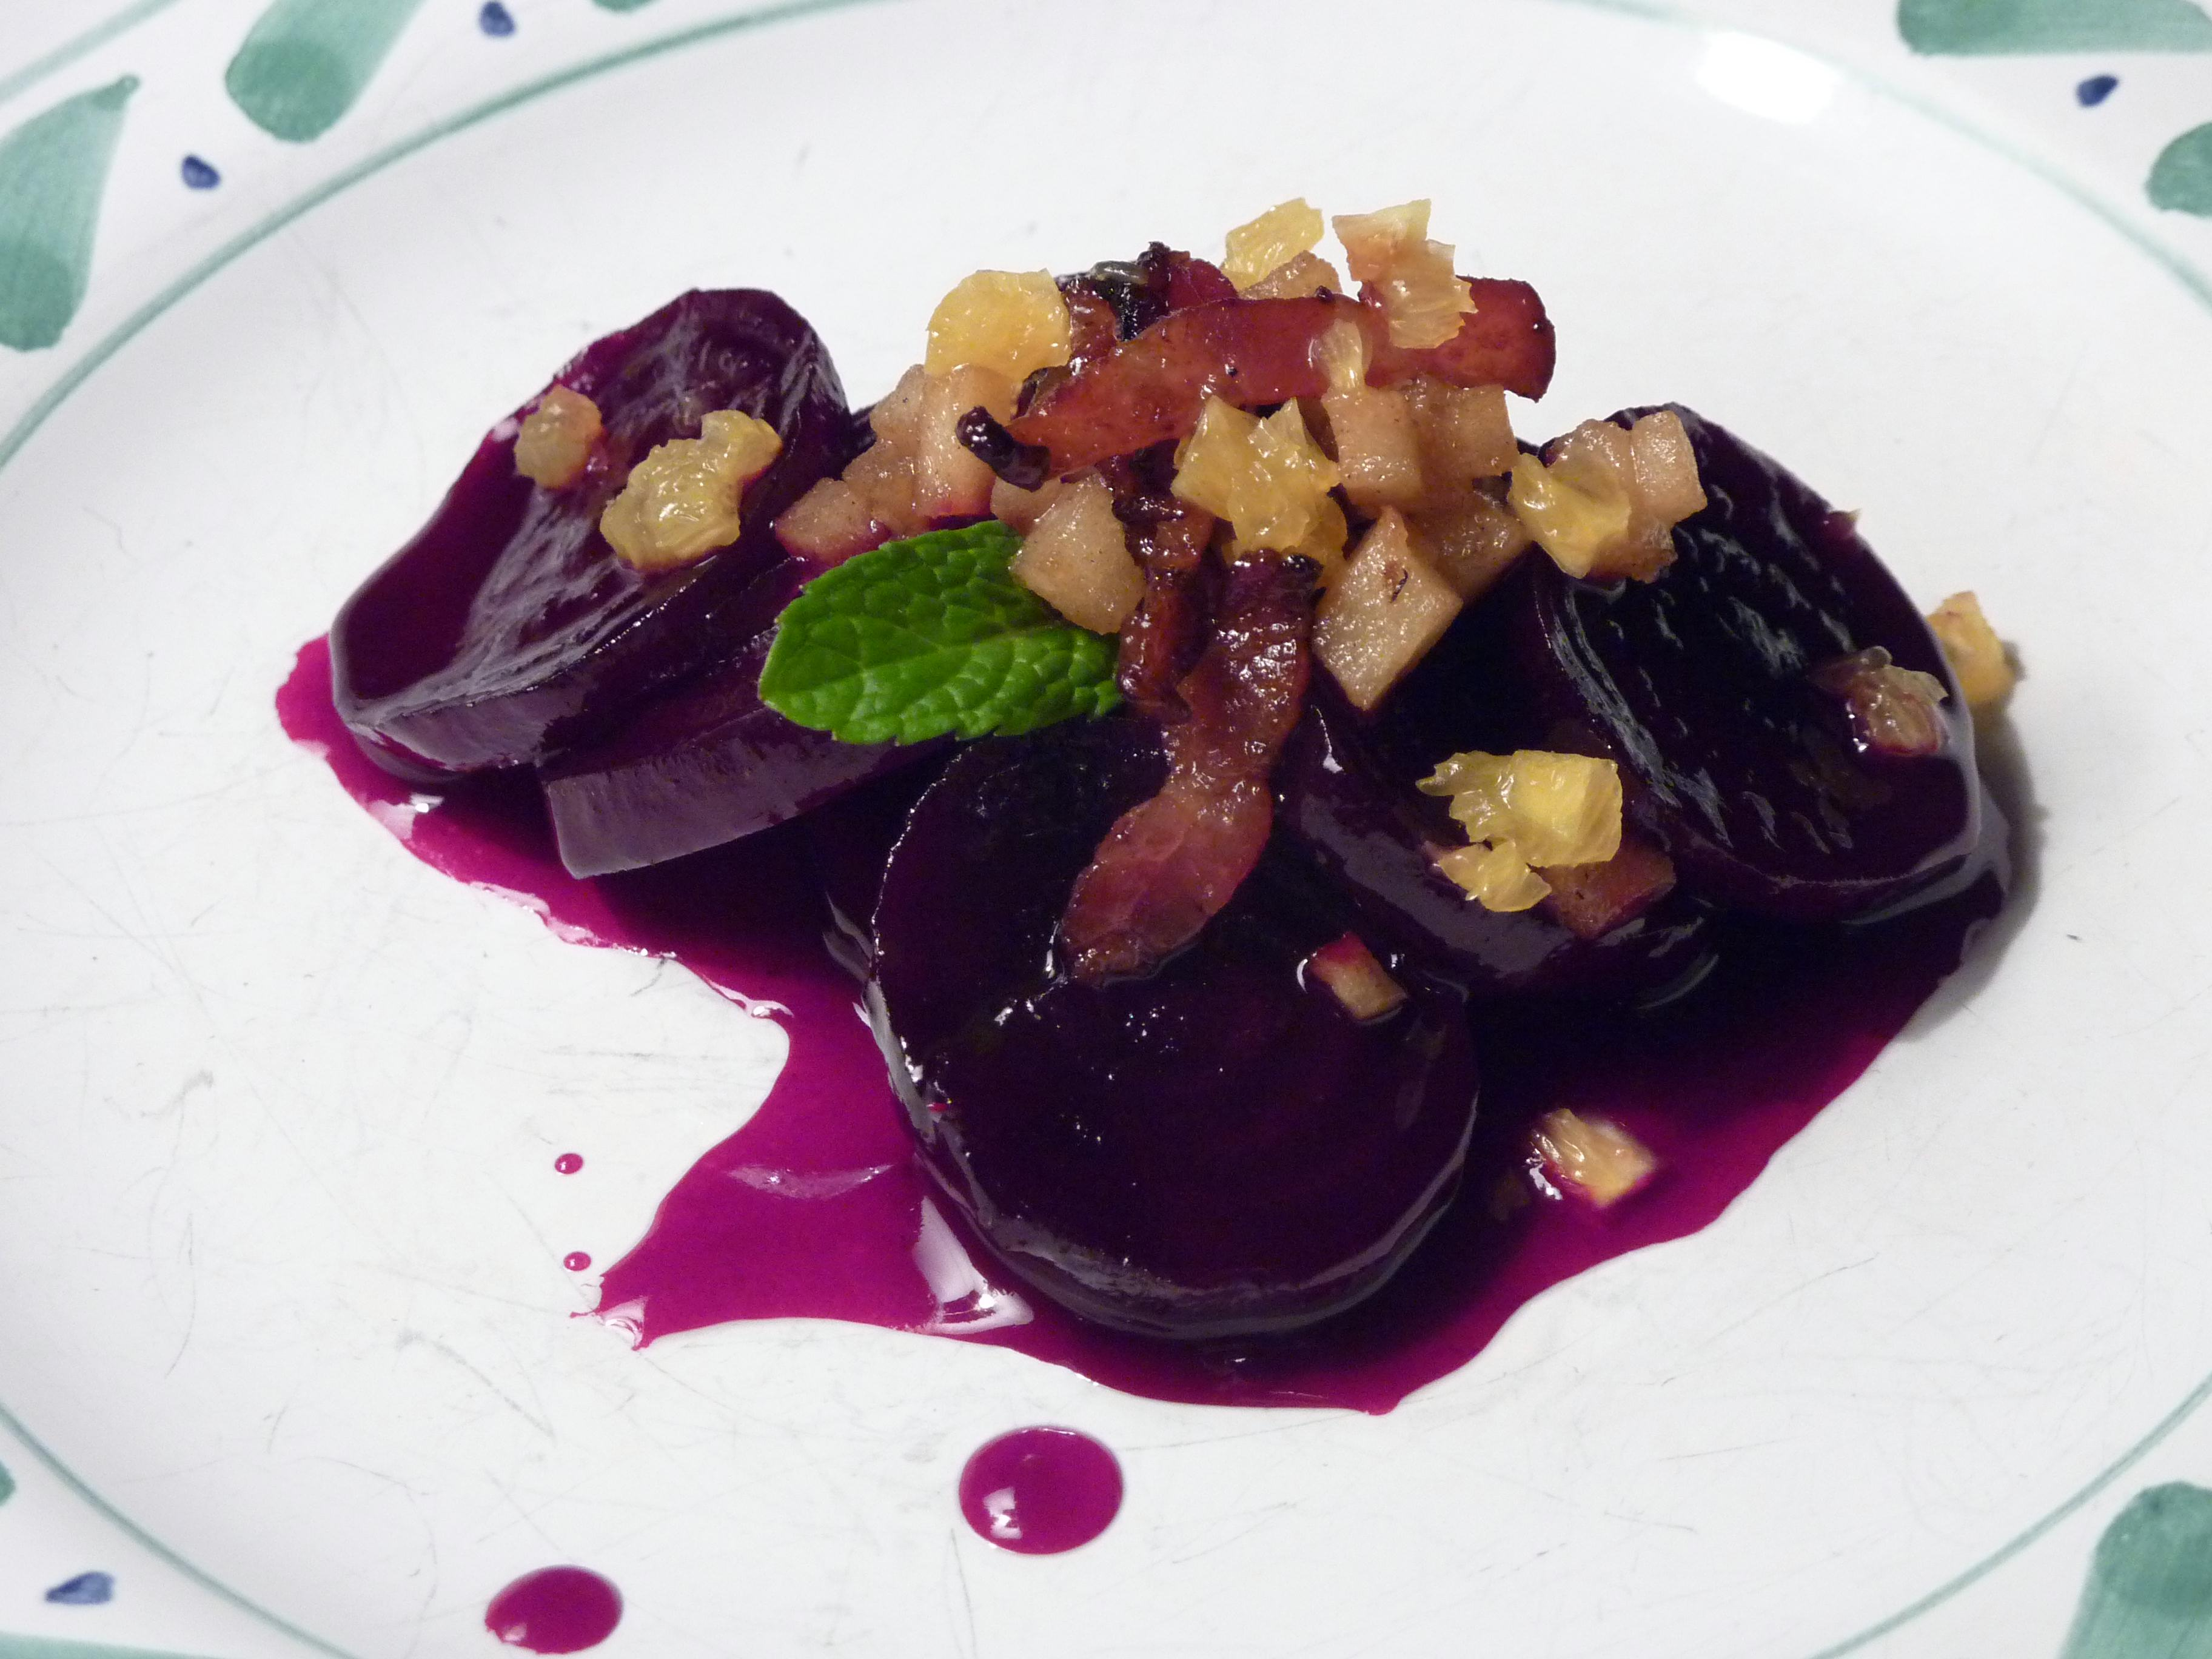 Mapled Beets with Apple-Orange Salsa and Bacon Lardons